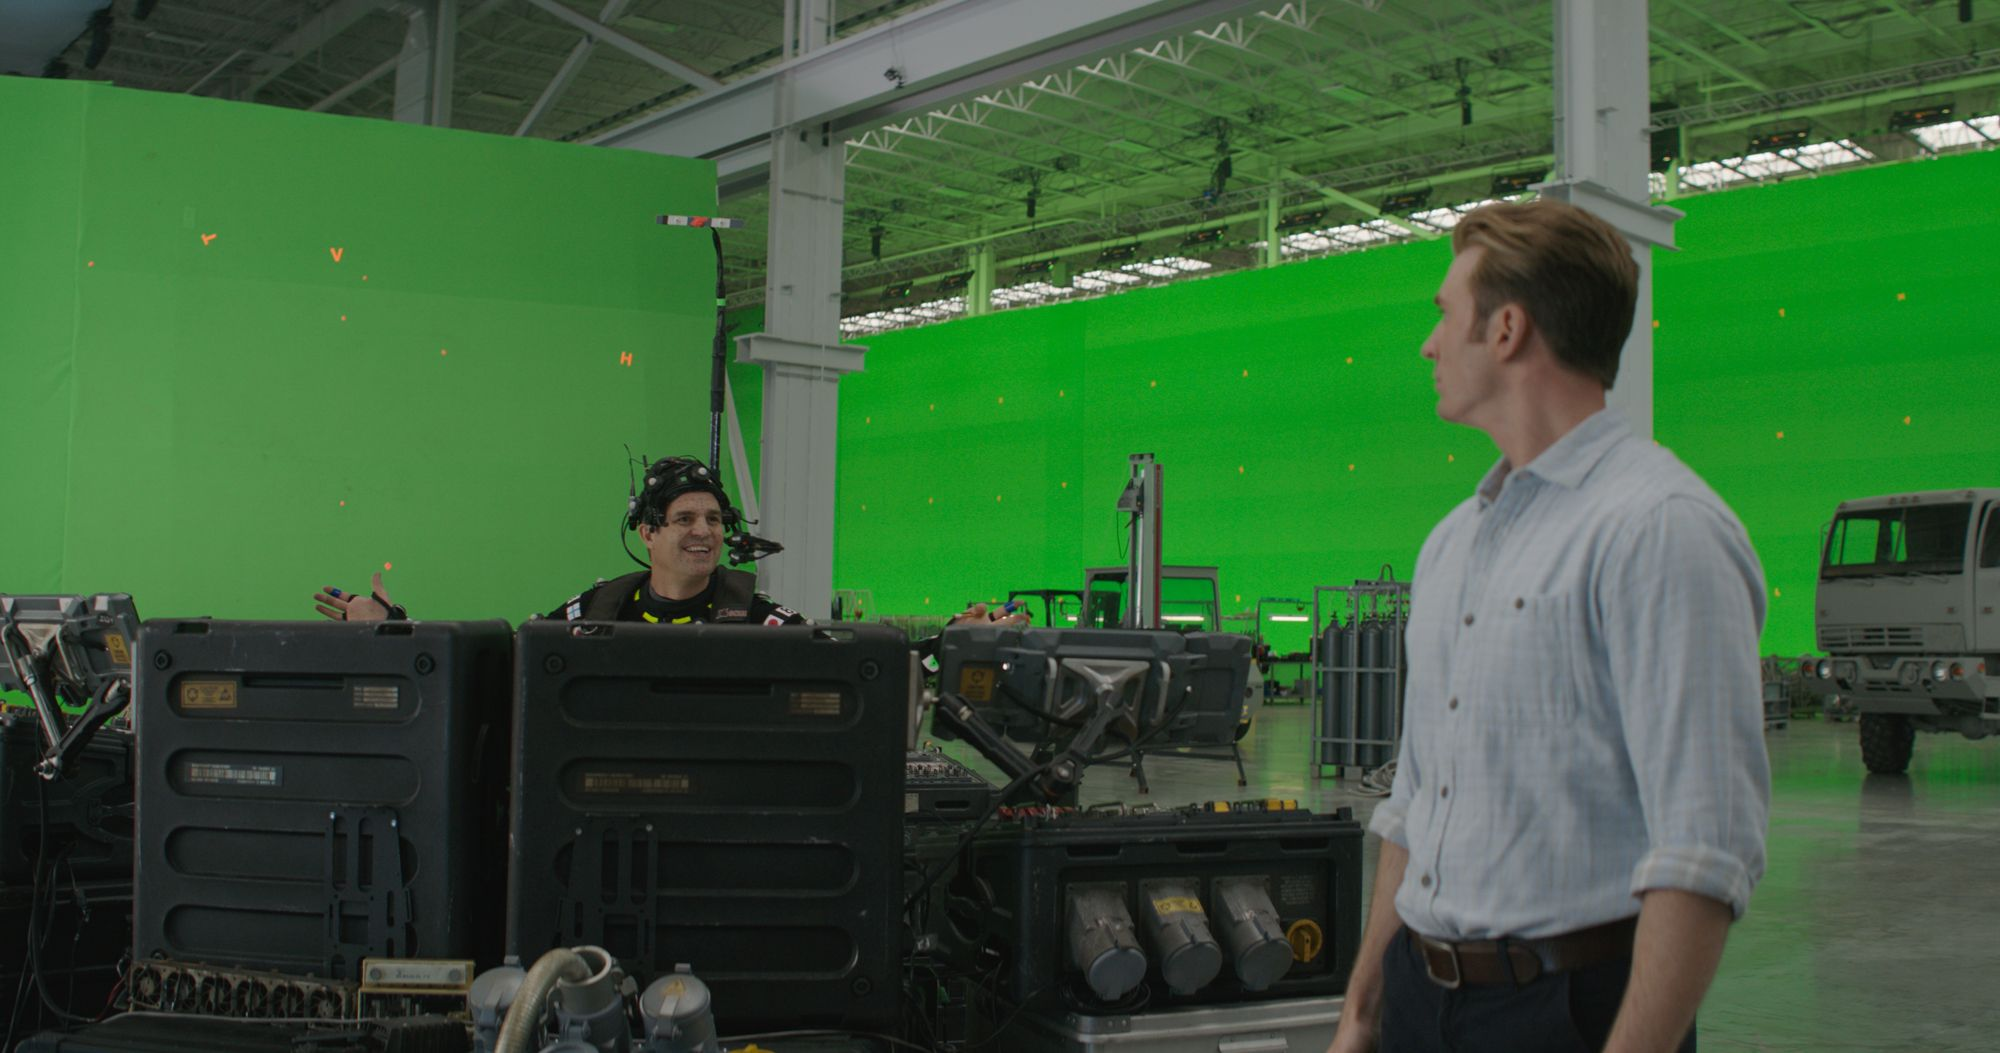 Avengers: Endgame Behind-the-Scenes Images Reveal How